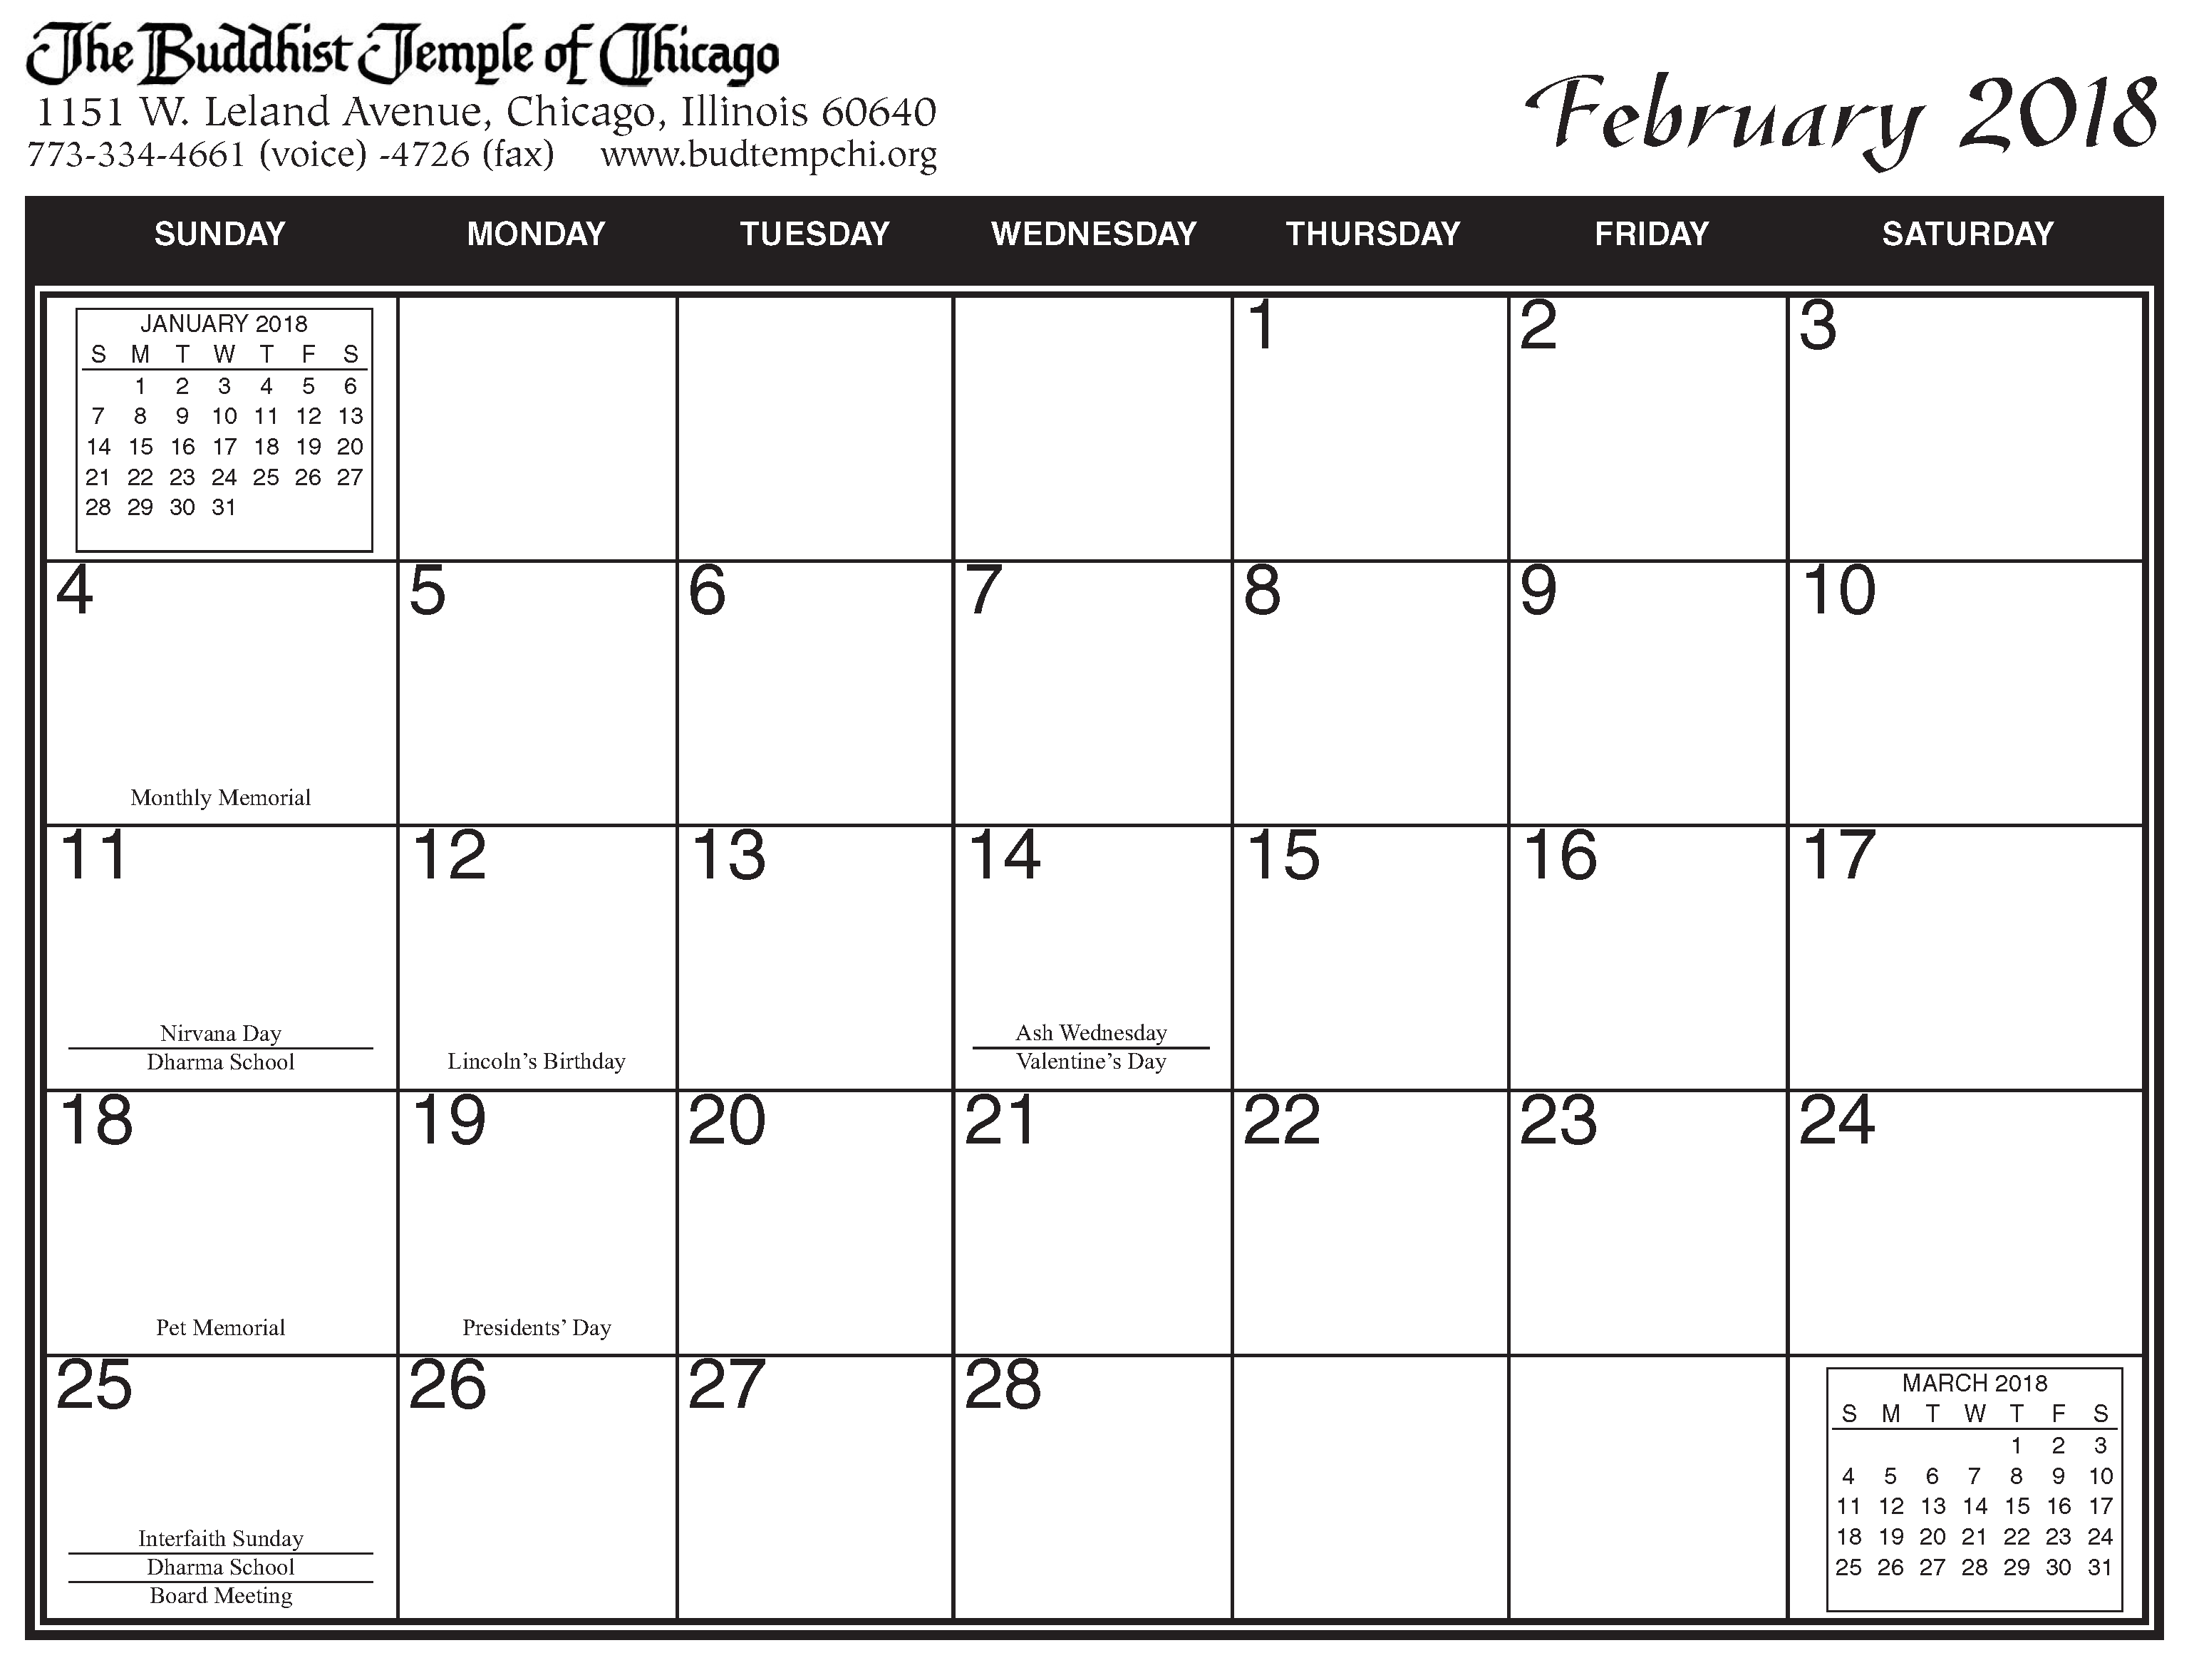 Printed 2018 Calendar archive – The Buddhist Temple of Chicago